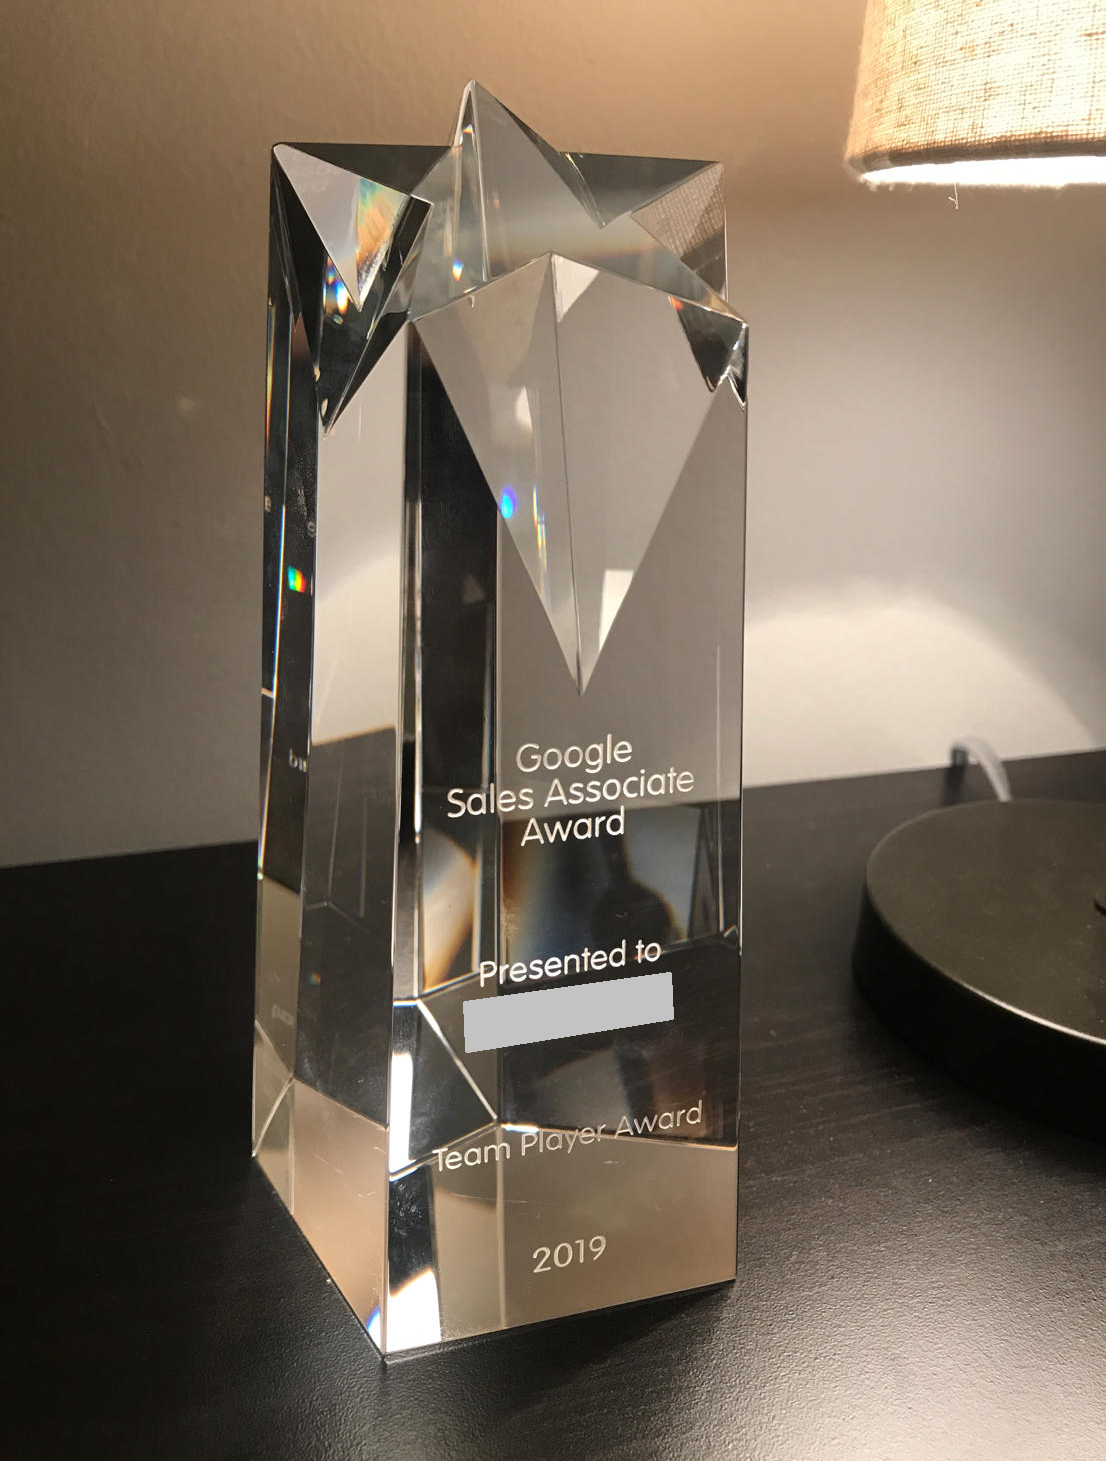 A google sales associate award memorabilia